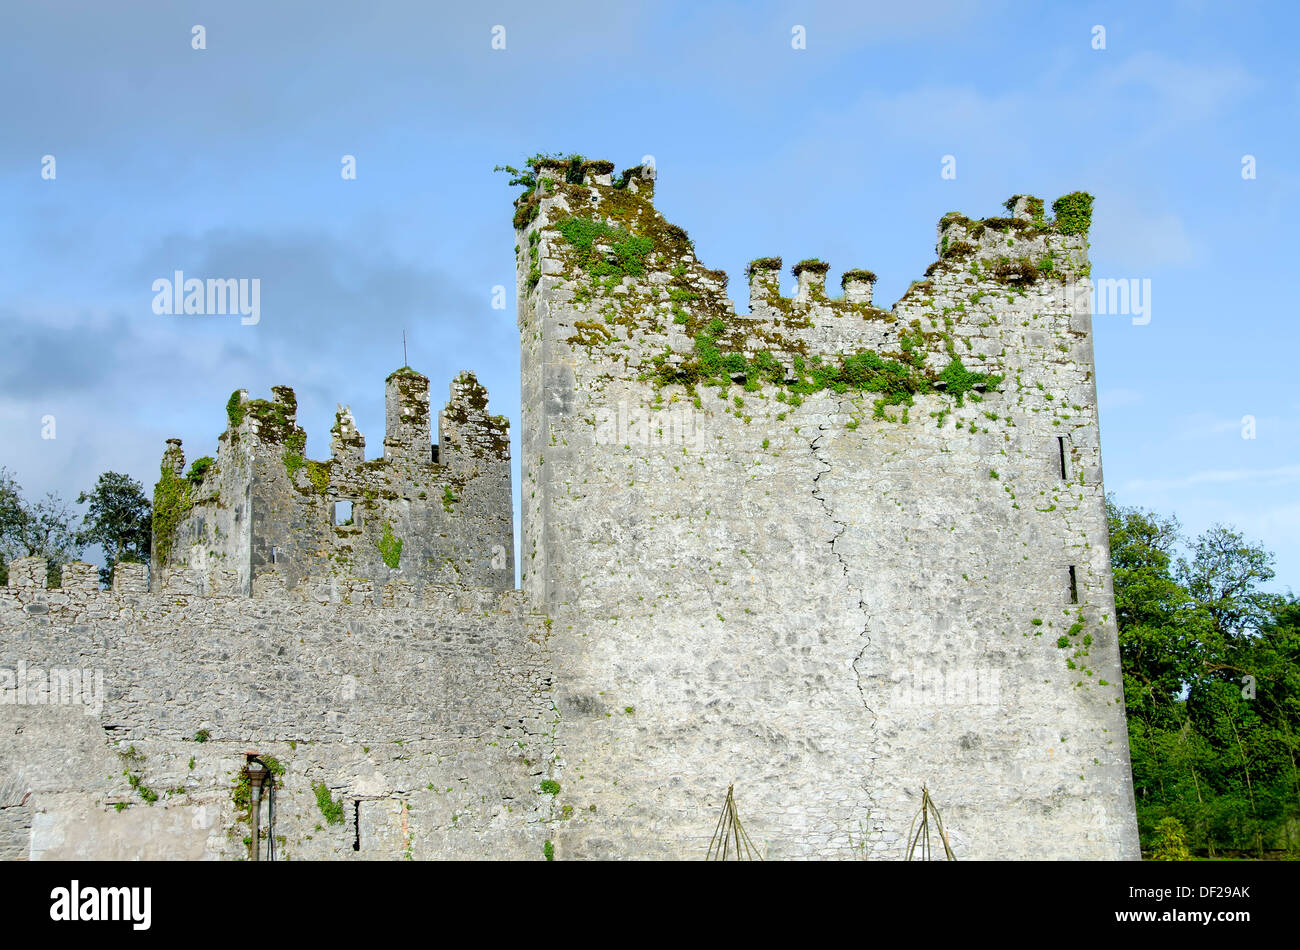 Tower and chimneys at the 800 year-old castle attributed to the Knights Templar at Castlemartyr resort, County Cork, Ireland. - Stock Image